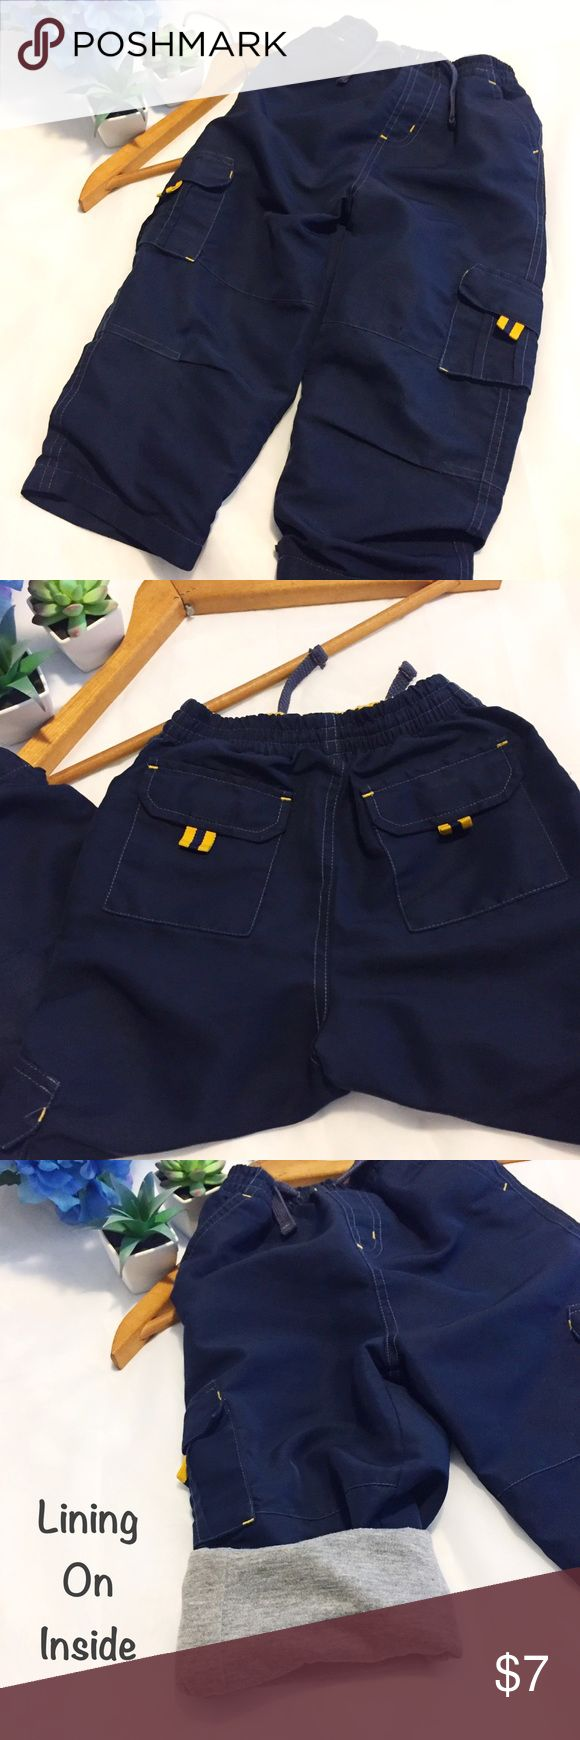 "Athletic Works | Boys' Cargo Pants w/Lining Athletic Works | Boys' Cargo Pants with lining | Navy Blue & Yellow | Good used condition-small signs of wear; please see pics | Size 4T | Shell: 100% Polyester | Lining: 80% Polyester & 20% Cotton | Flat lay measurements: 8.5"" waist; 14"" inseam. Reasonable offers considered. 🚫trades/offline transactions. 🛍Bundle to save 10% • 3+ items. Thank you🌷 Athletic Works Bottoms Casual"